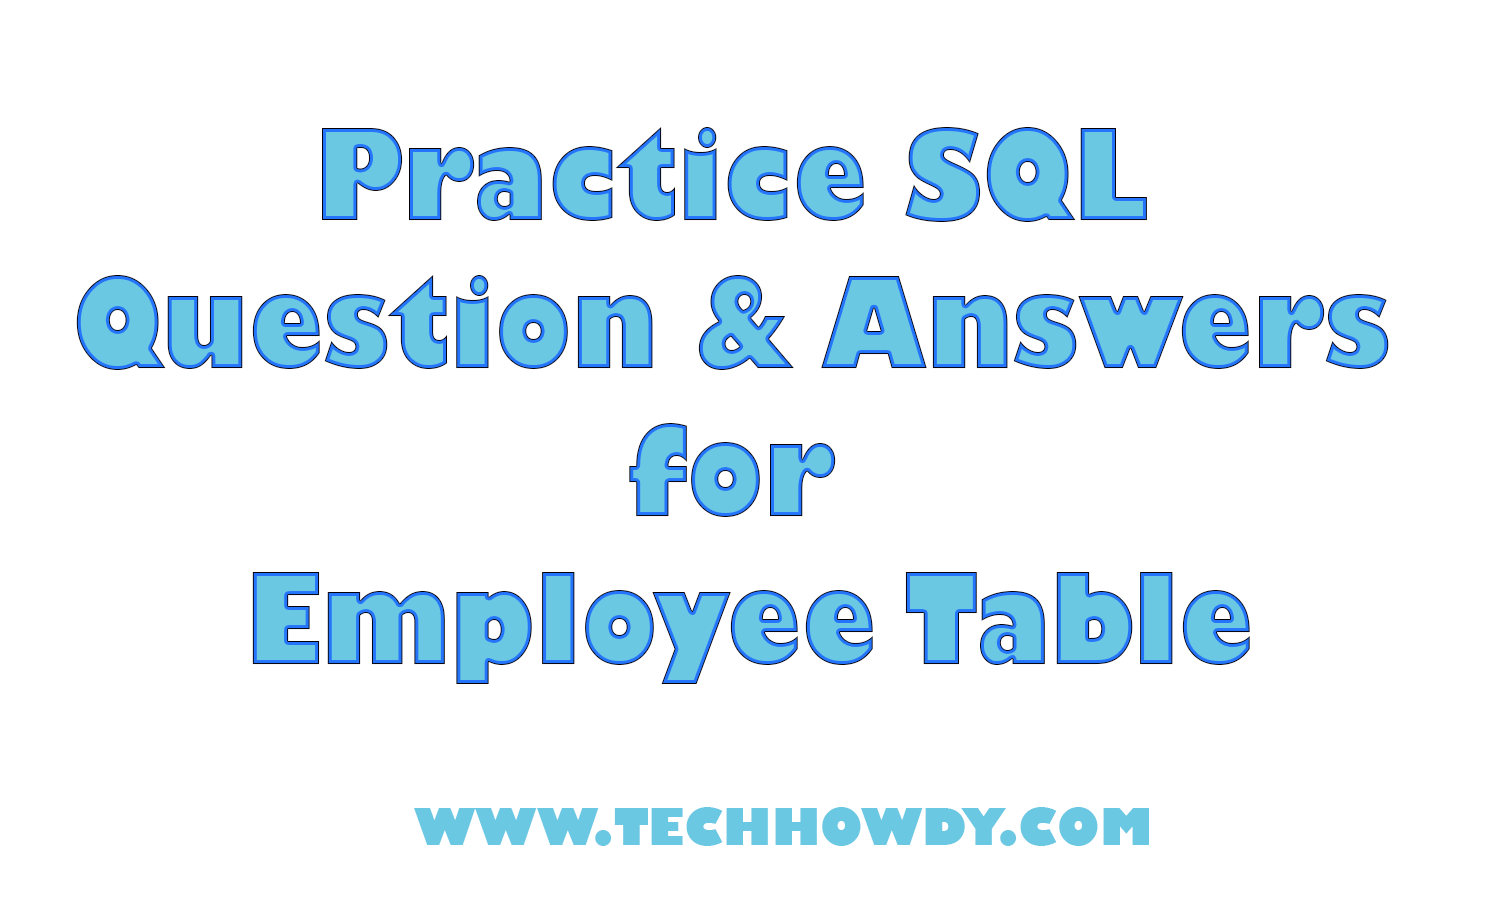 Practice SQL Question and Answers for Employee Table - TechHowdy